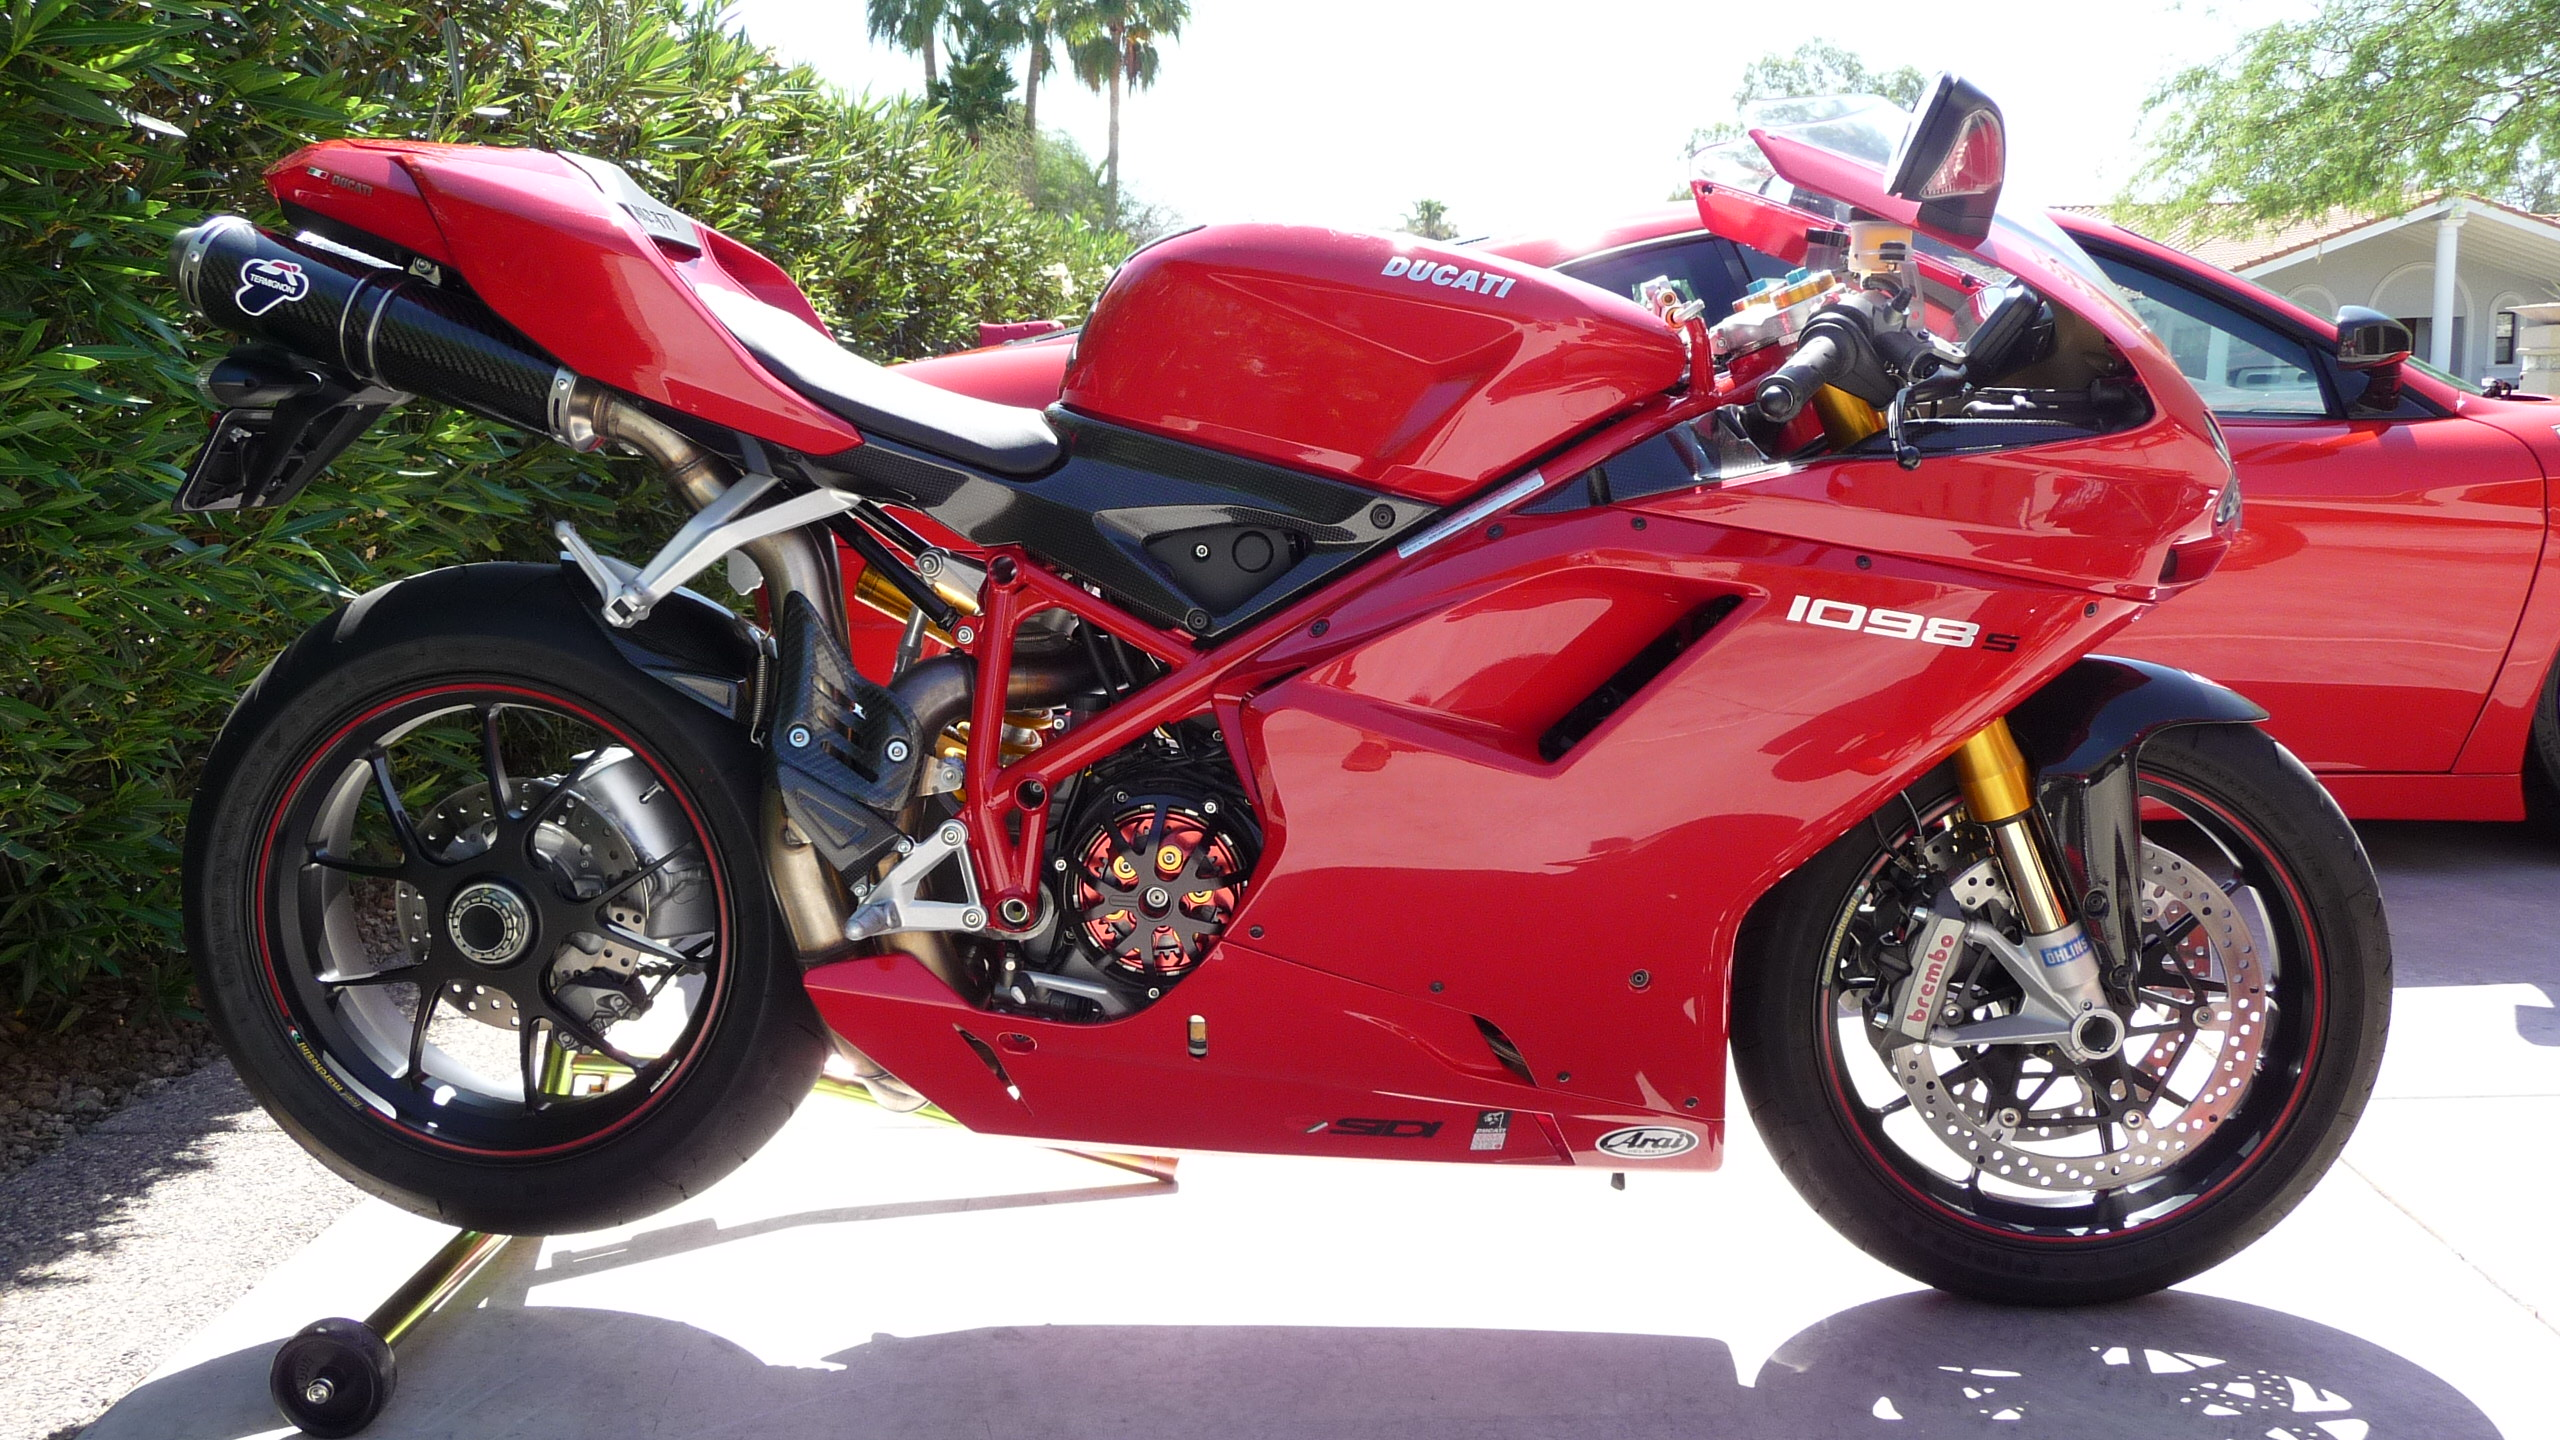 For sale: 08 1098S with 490 original miles - ducati.org forum | the ...